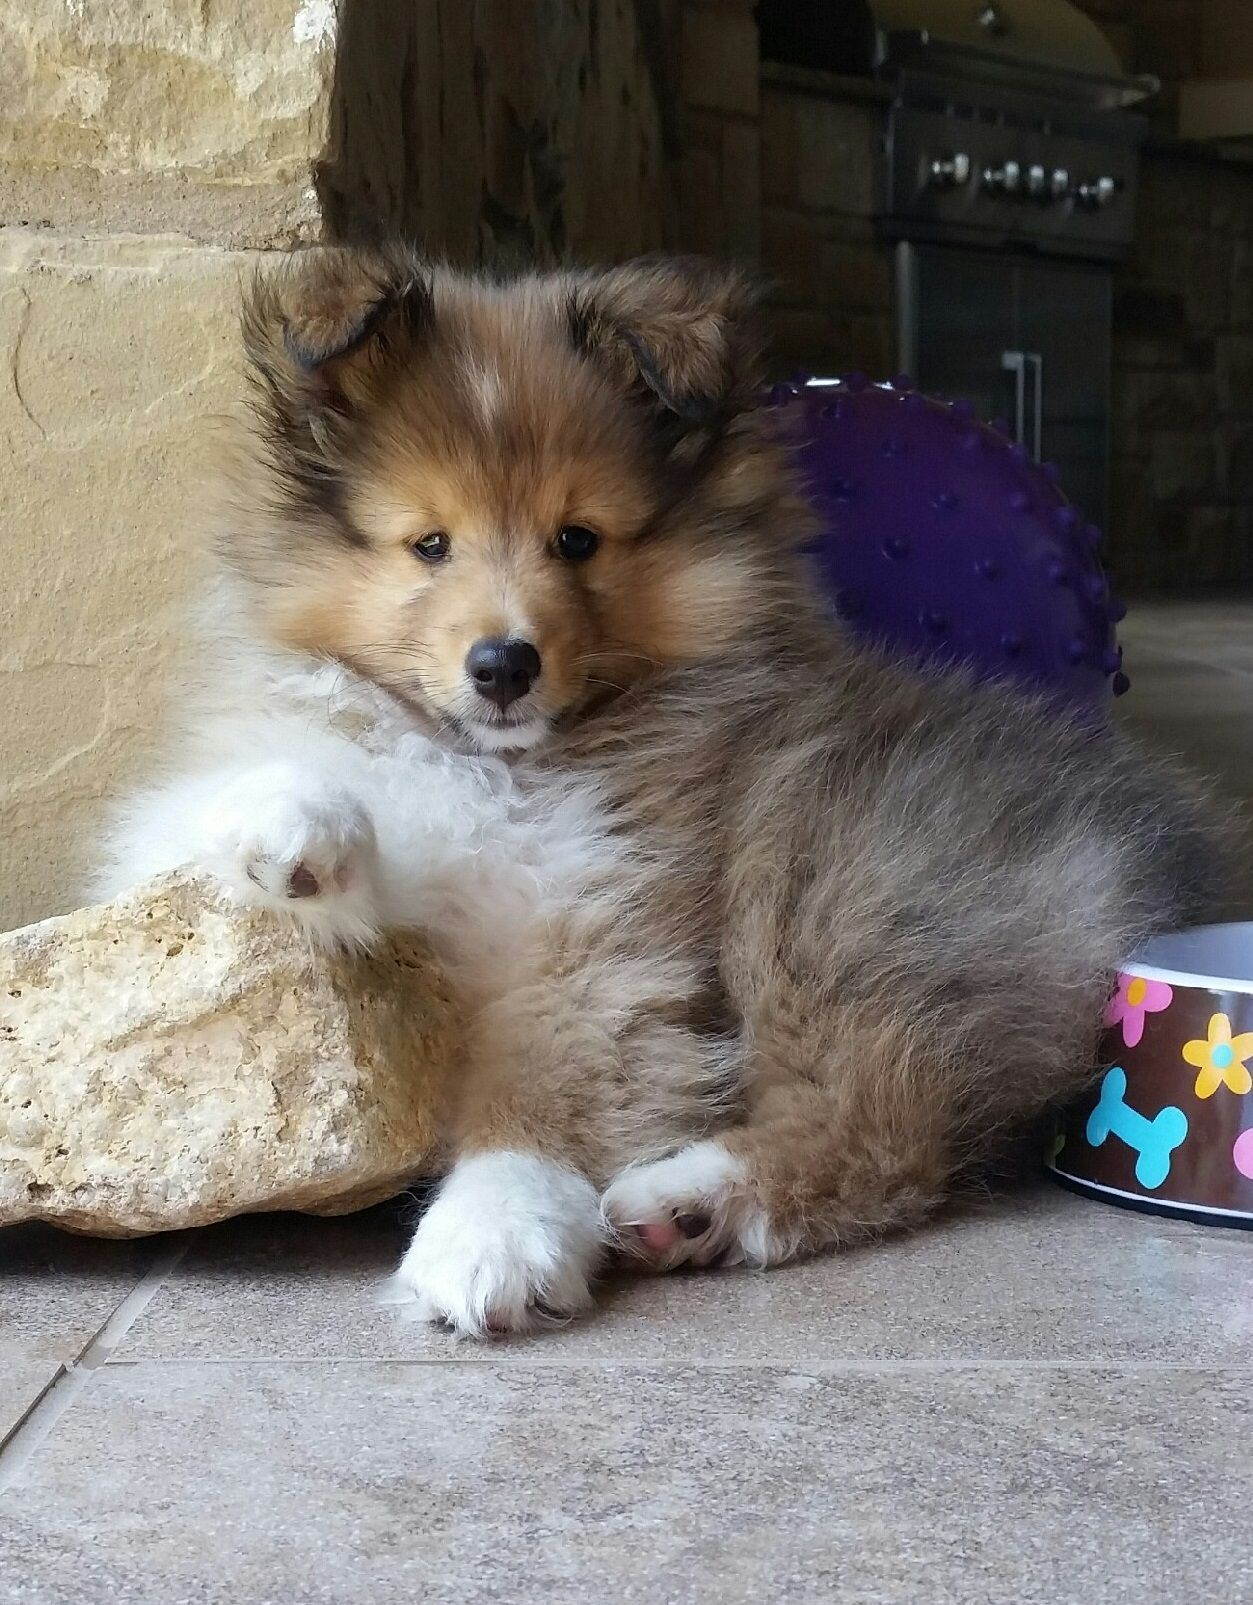 Texas Sheltie Breeders Sheltie Pups Shetland Sheepdog Puppy Lockehill Shelties Puppy Page Shetlandsheepdo Sheep Dog Puppy Shetland Sheepdog Puppies Sheltie